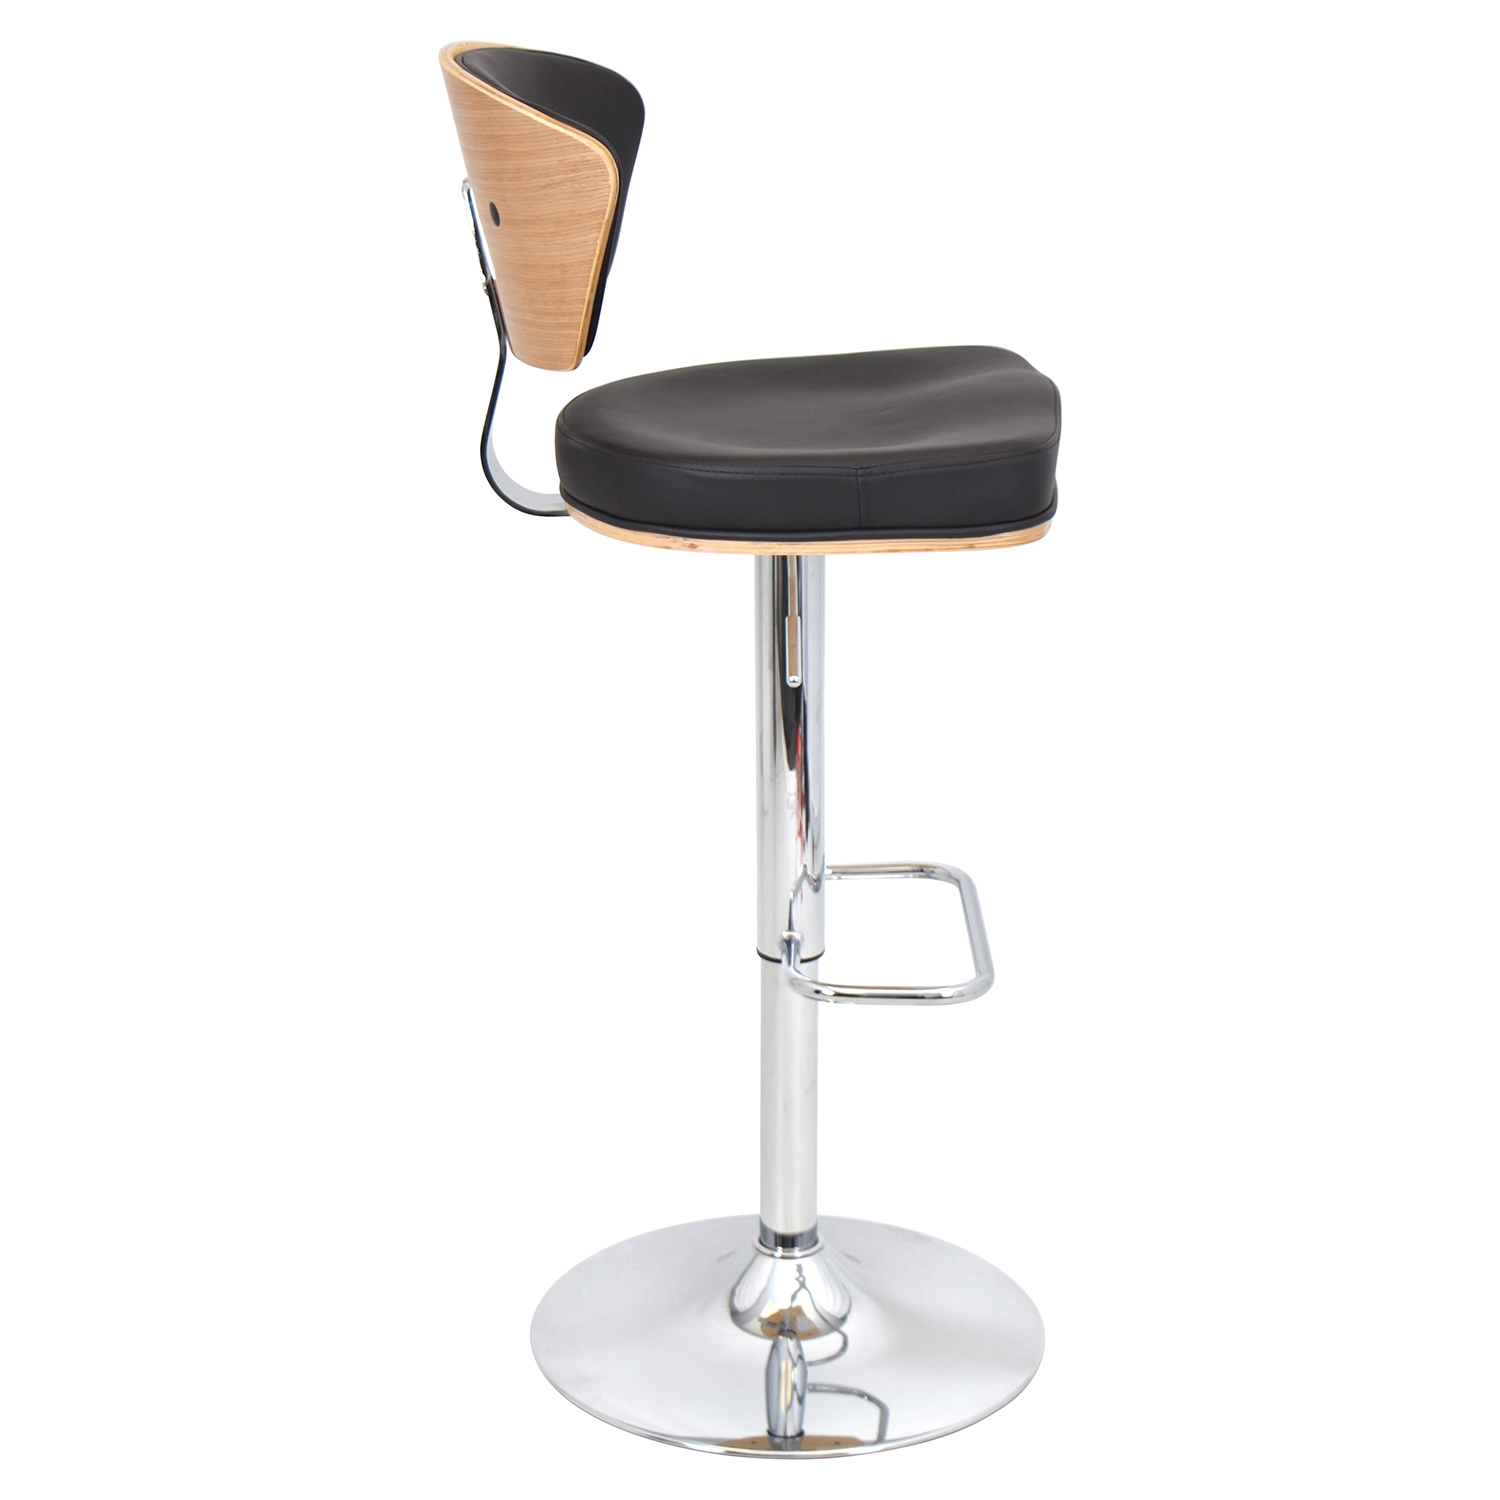 Ravinia Height Adjustable Barstool - Swivel, Bamboo, Espresso - LMS-BS-JY-RAV-BM-E